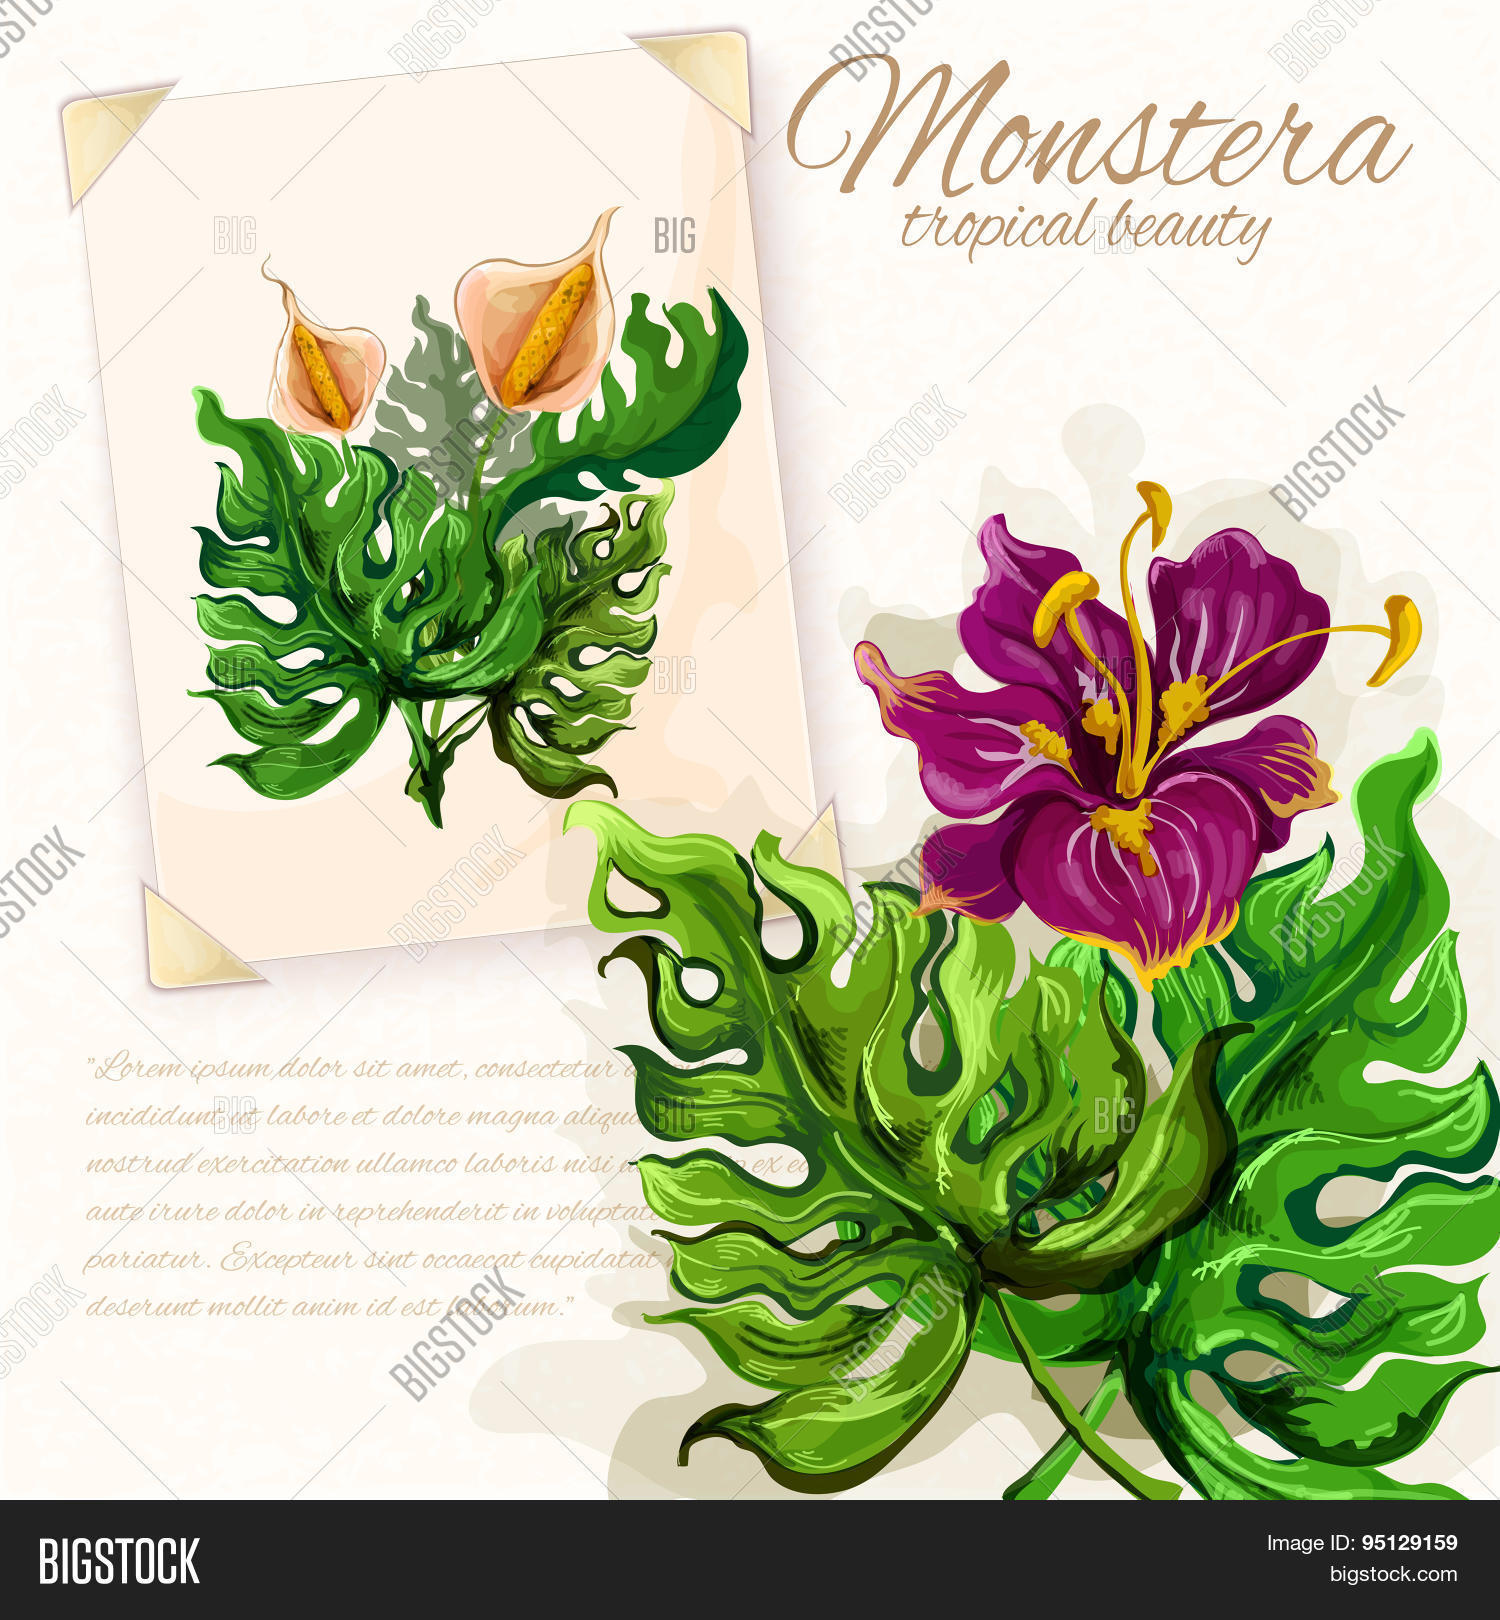 Monstera Leaves Vector Photo Free Trial Bigstock